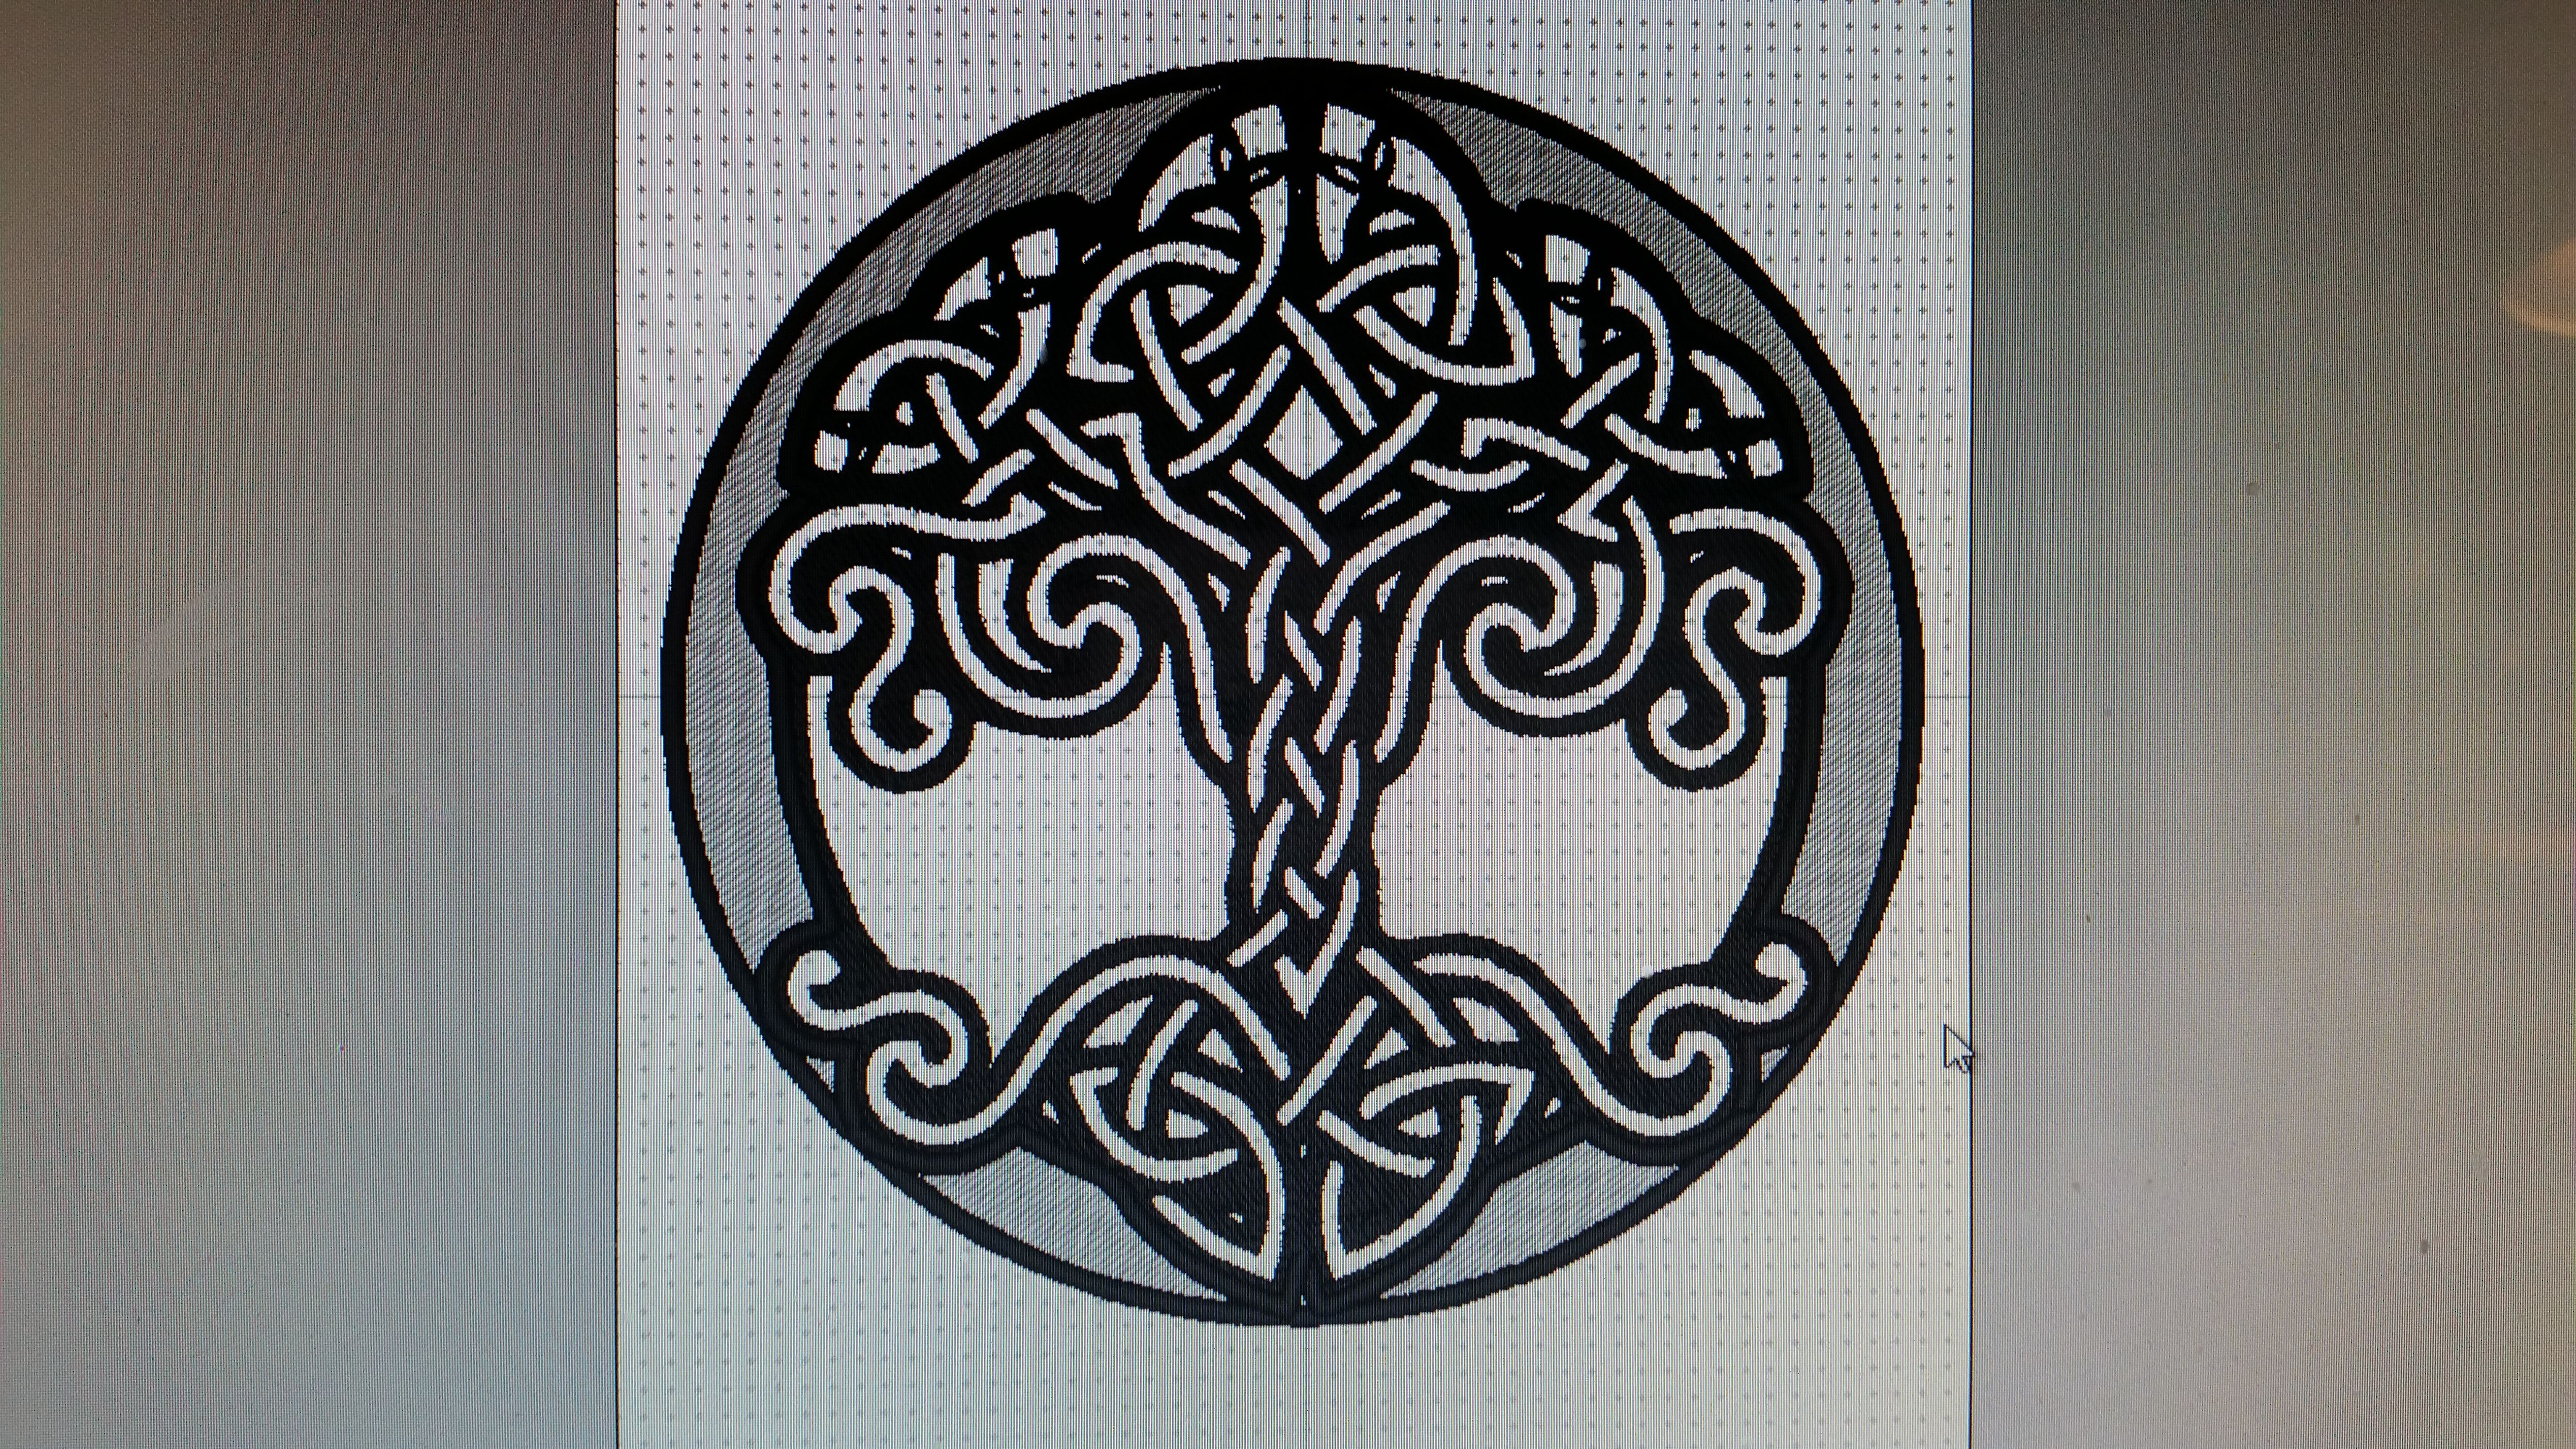 Tree of life 5 celtic druid gnostic machine embroidery pattern tree of life 5 celtic druid gnostic machine embroidery pattern design bankloansurffo Choice Image